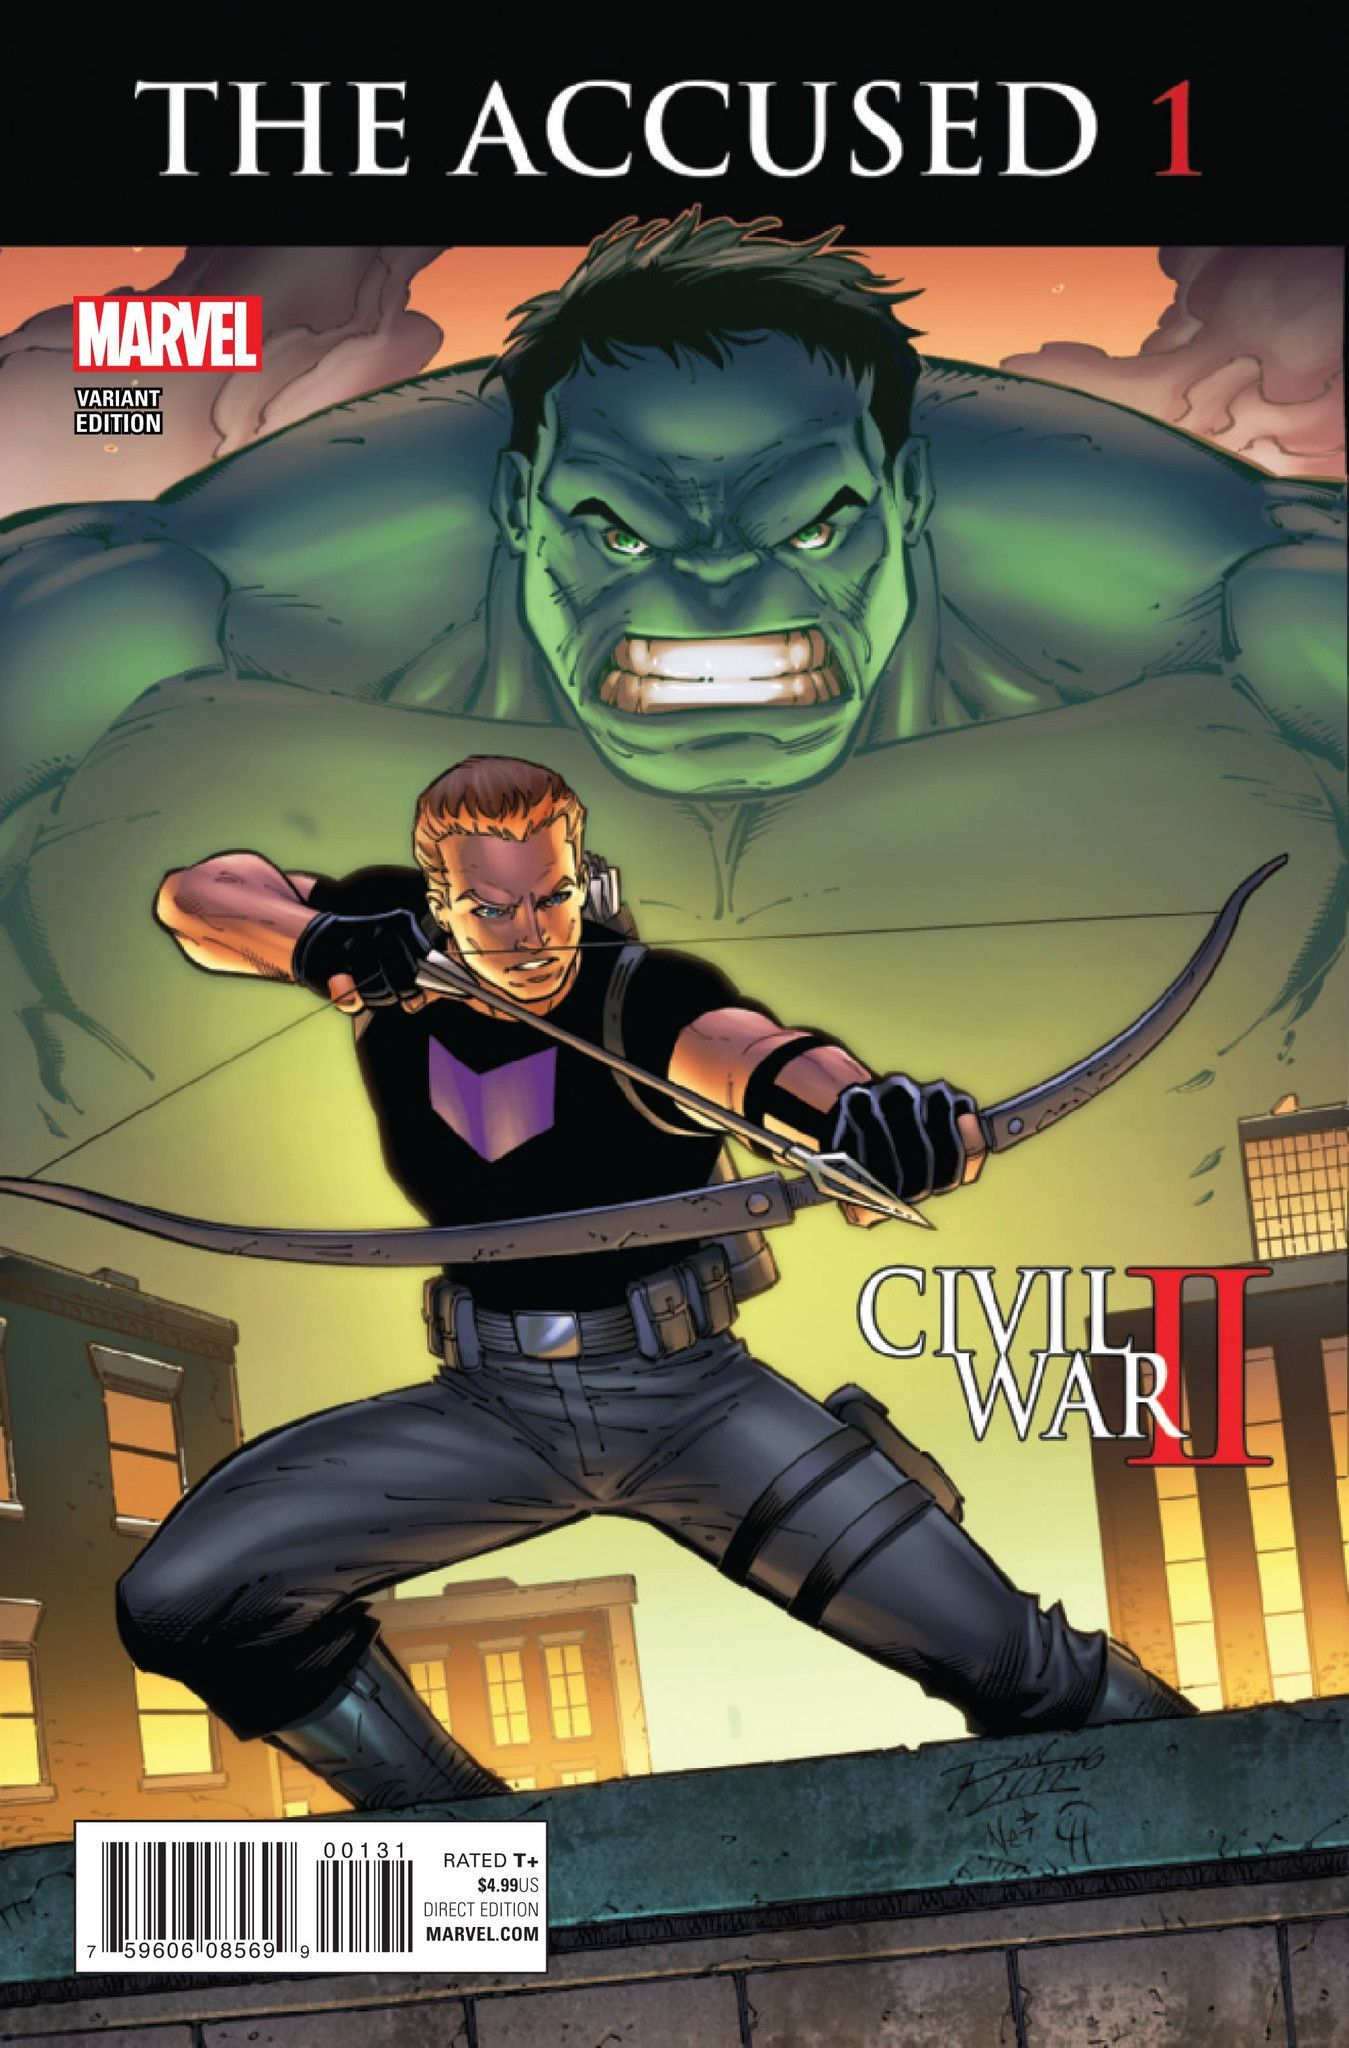 MARVEL COMICS (W) Marc Guggenheim (A) Ramon Bachs, Garry Brown (CA) Ron Lim It's the trial of the century! As a beloved Avenger falls, another takes the stand to answer for his death. As Hawkeye stand